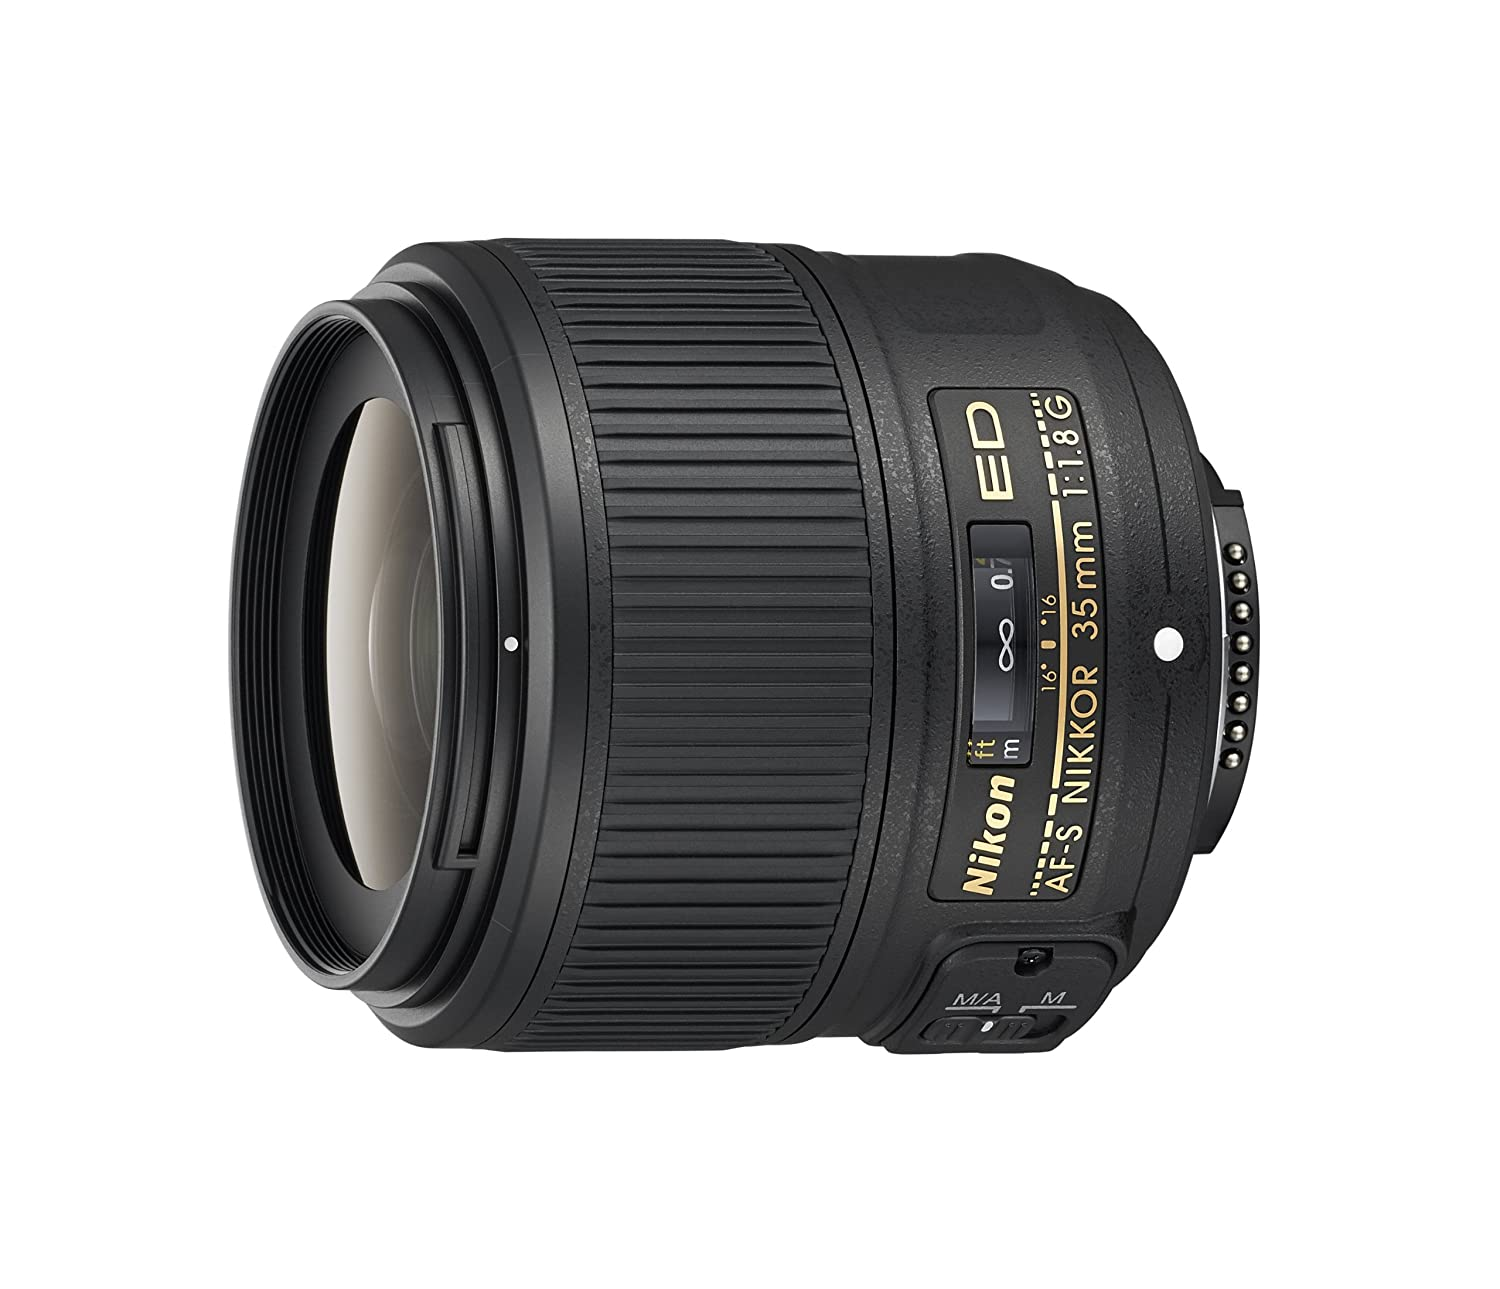 Harga Sony 90mm F 28g Oss Macro G Lens Update 2018 Ceviro Kyukei Clutch For Man And Woman Camera Reviews Af S Nikkor 35mm 18 Ed